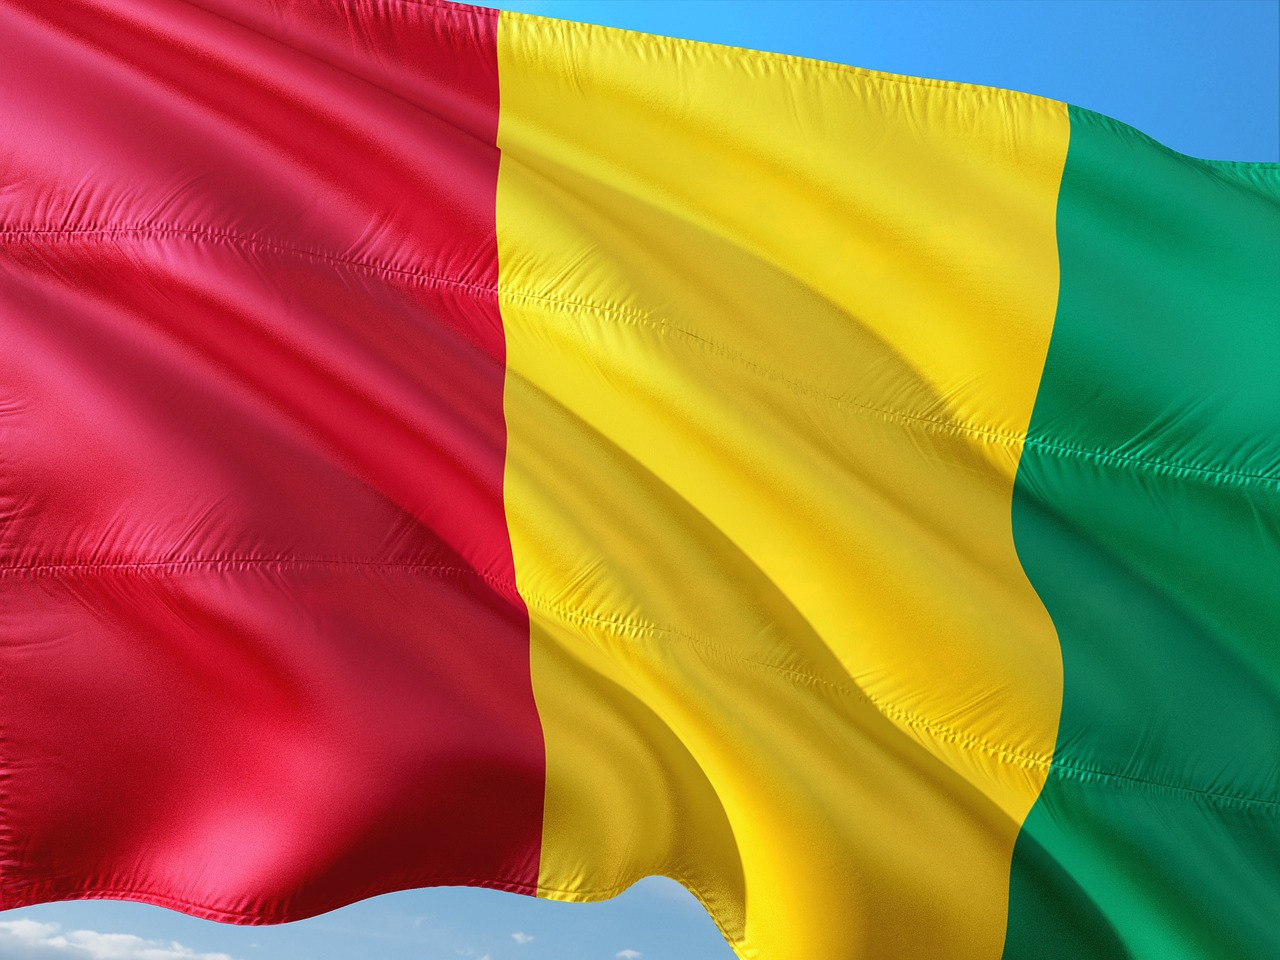 Guinea president overthrown and constitution dissolved in military coup